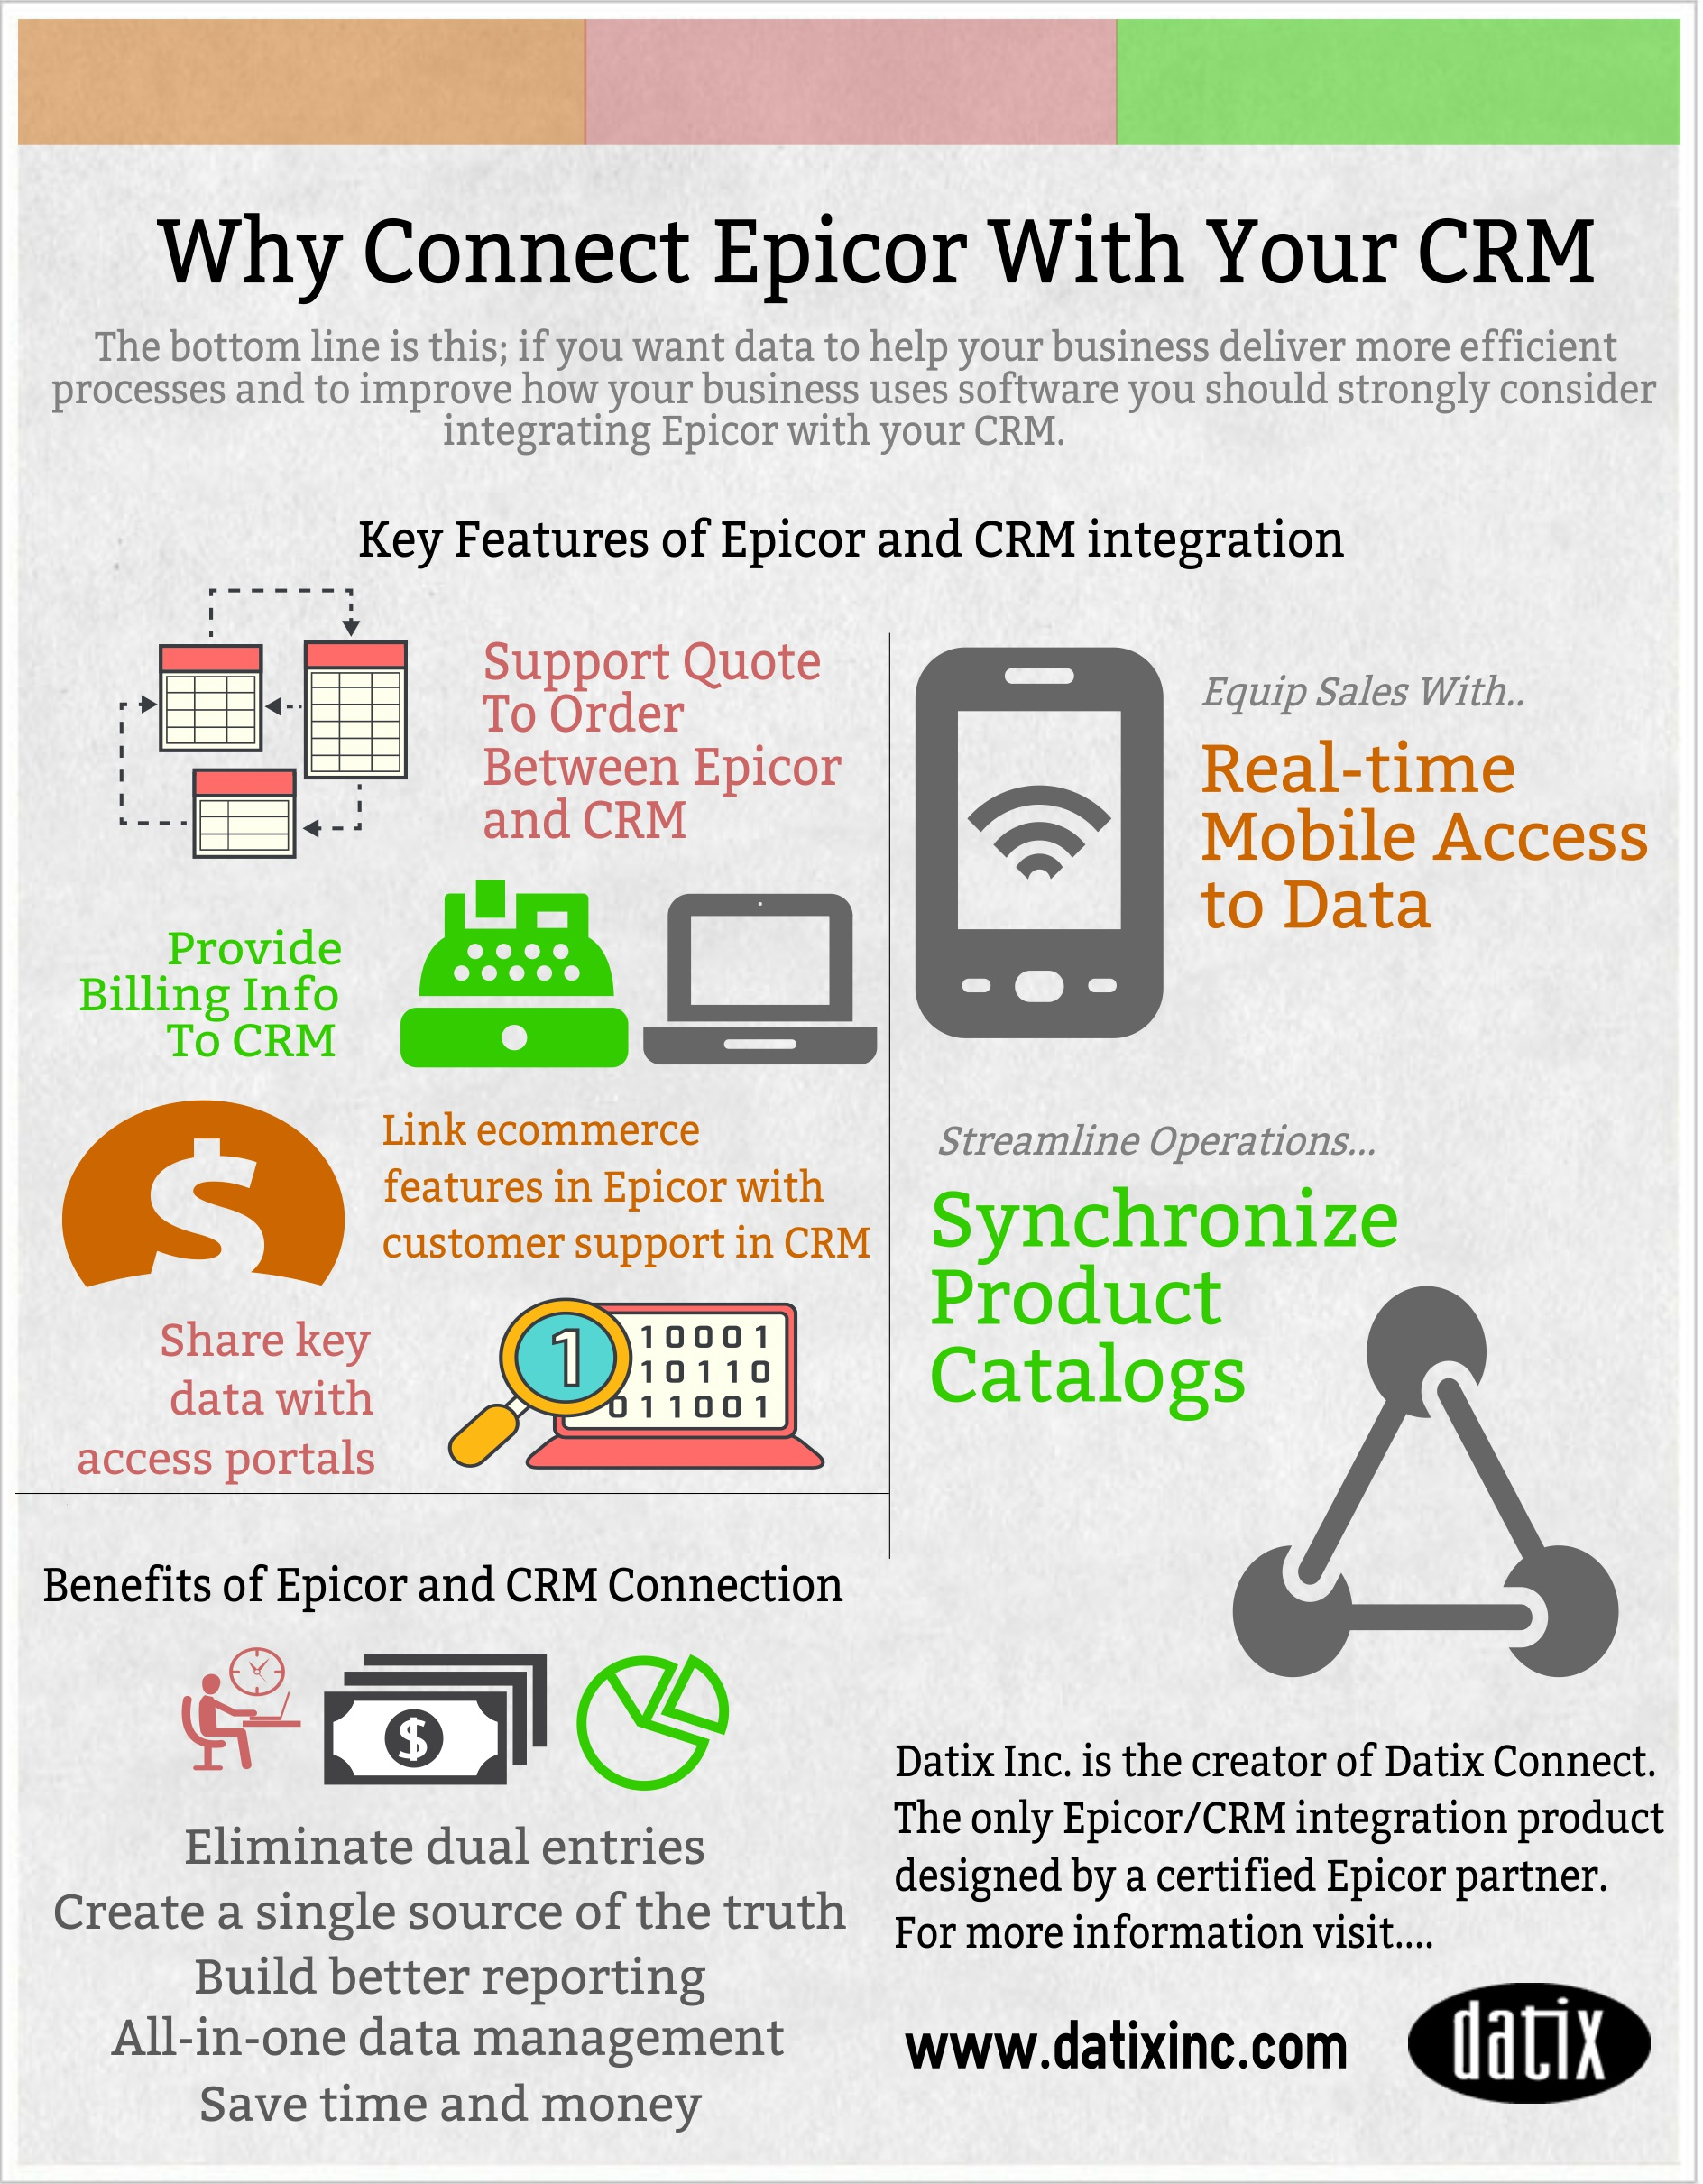 Connect Epicor With CRM